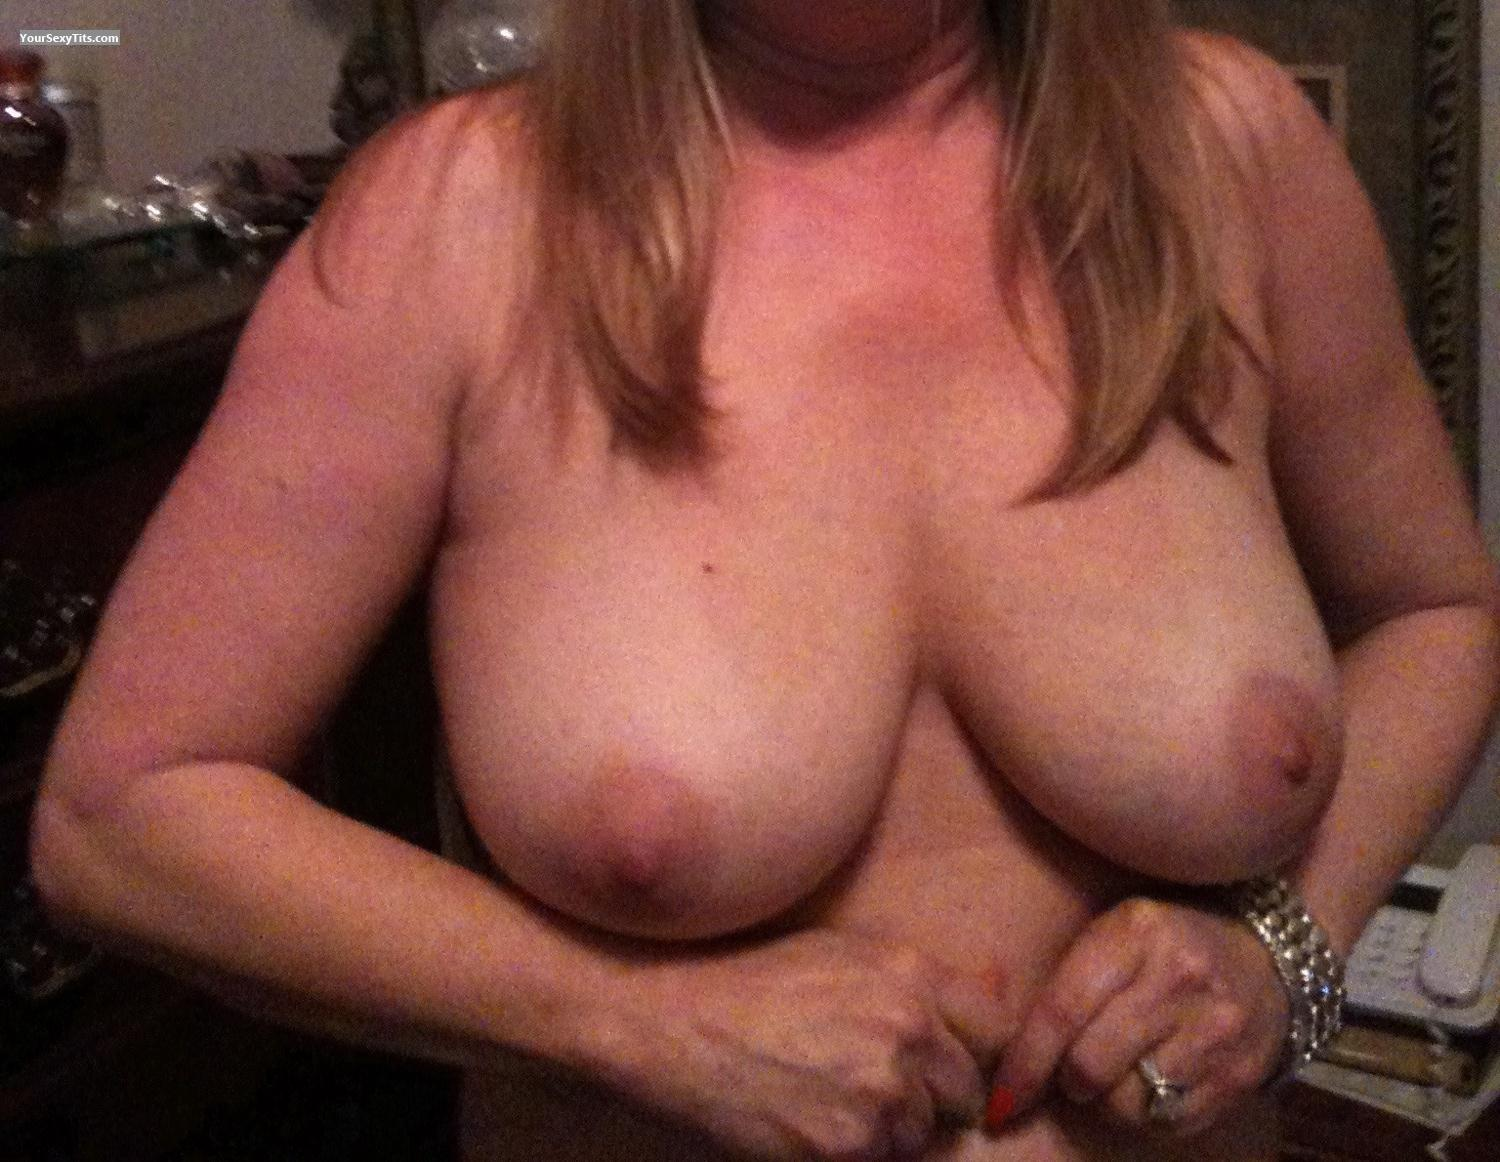 Very big Tits Natural51